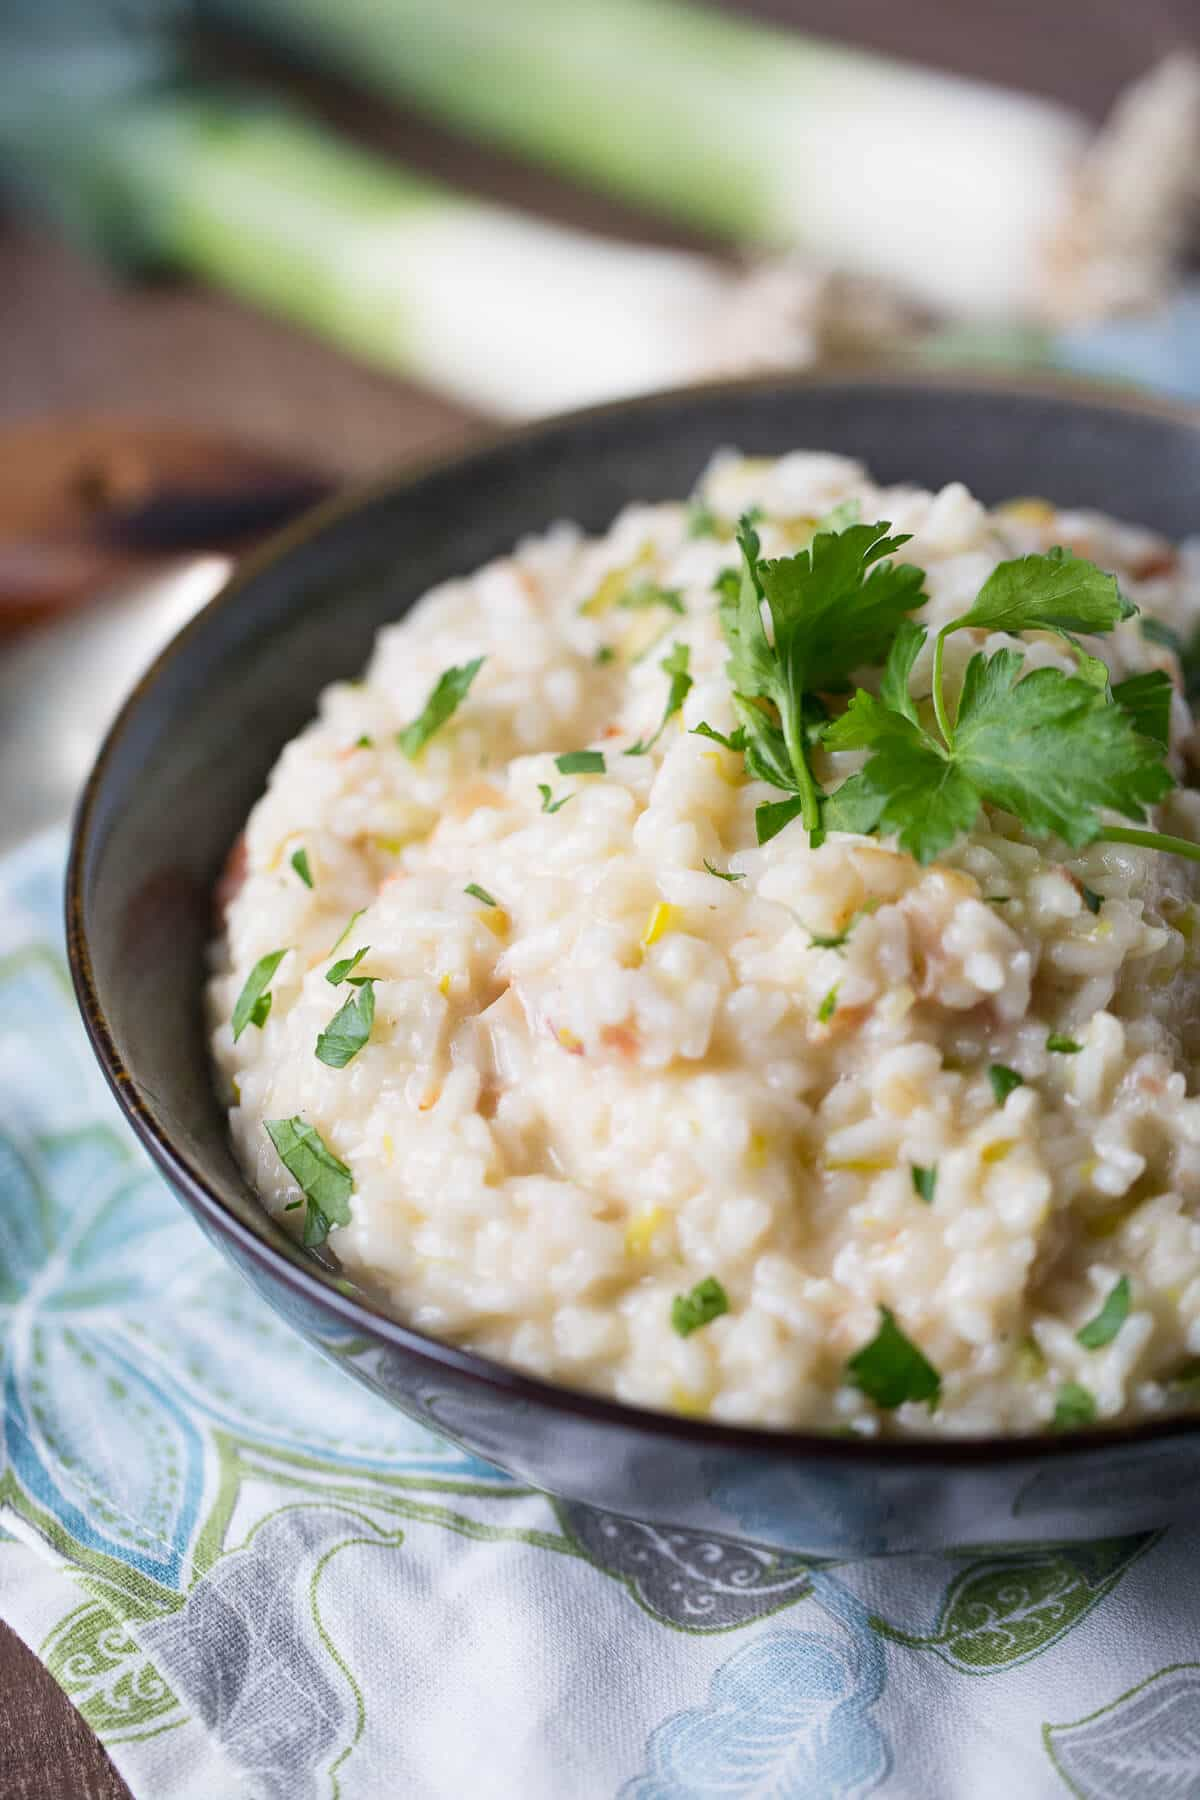 This bacon risotto is going to change how you do sides! Risotto seems intimidating but it is so easy to prepare!